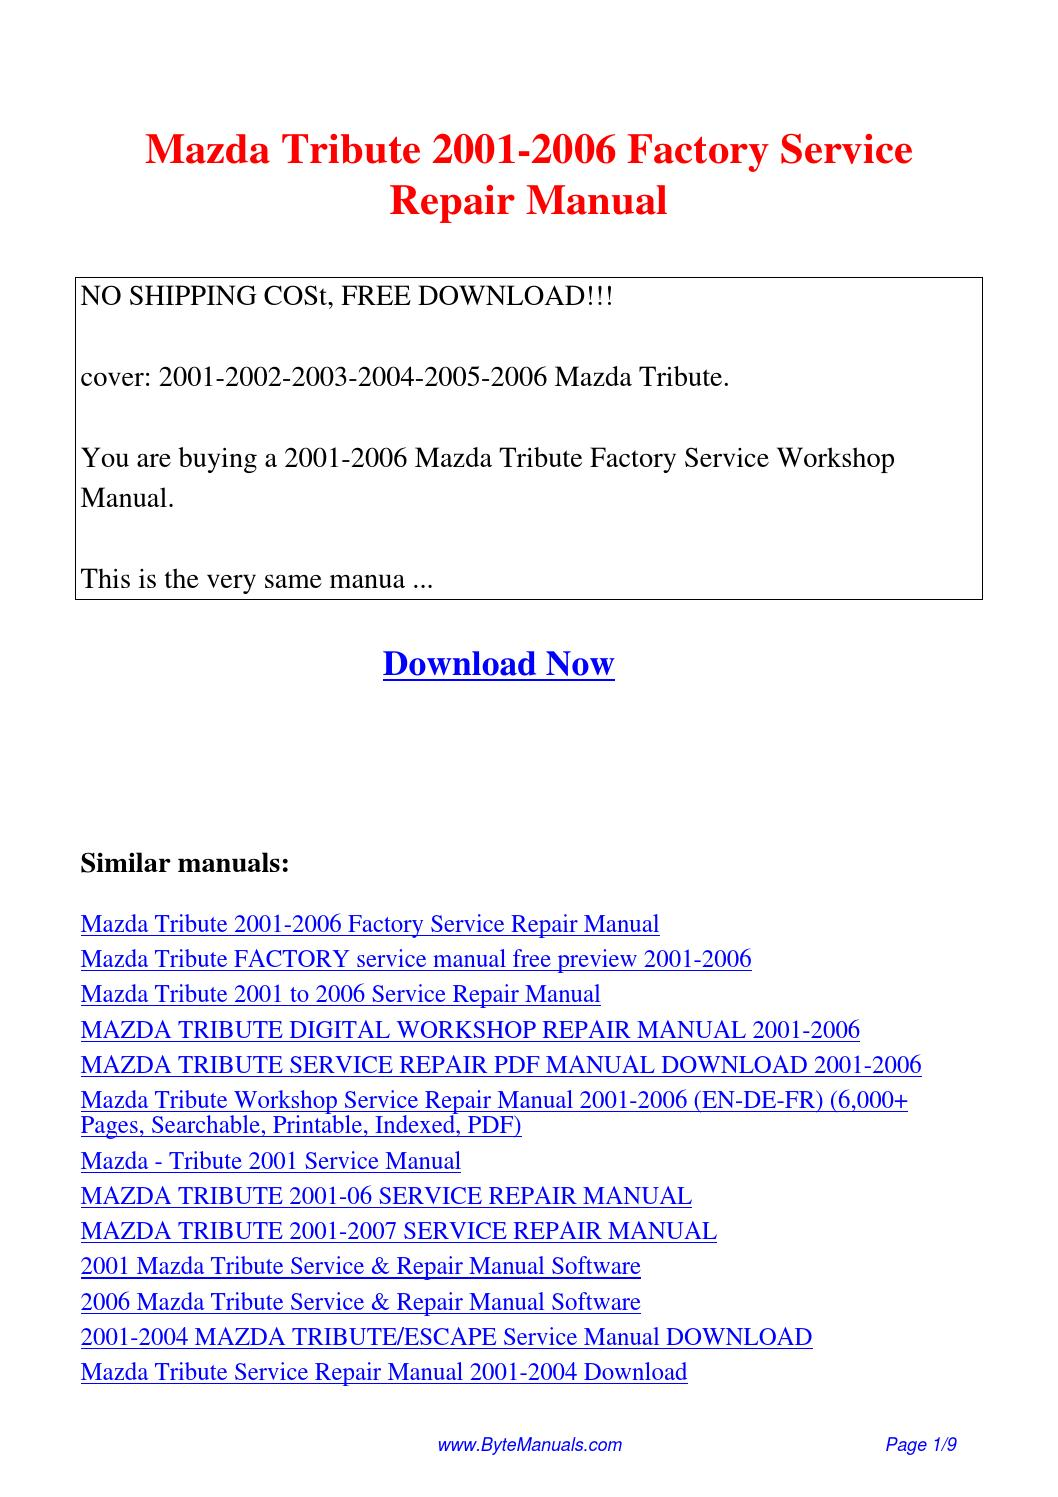 Mazda Tribute 2001-2006 Factory Service Repair Manual.pdf by Ging Tang -  issuu